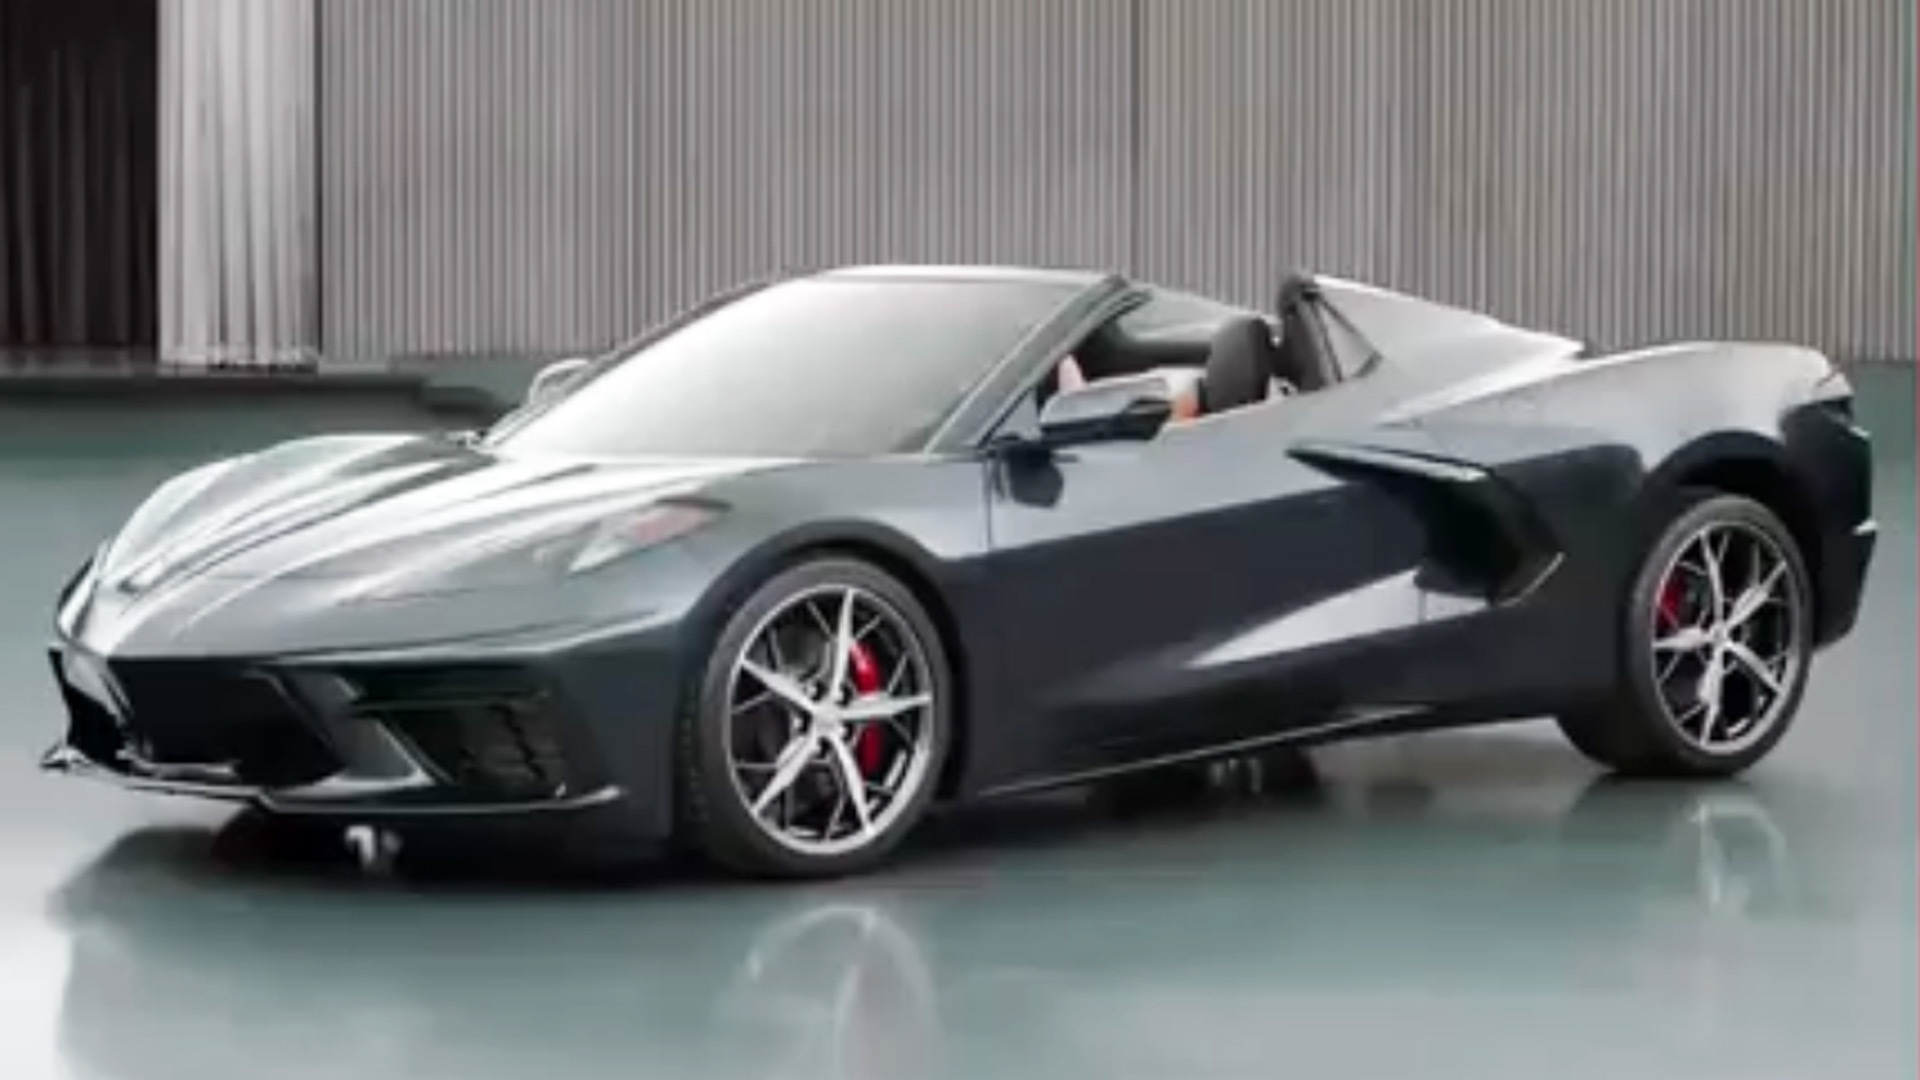 50 New 2020 Chevy Corvette Stingray Specs and Review